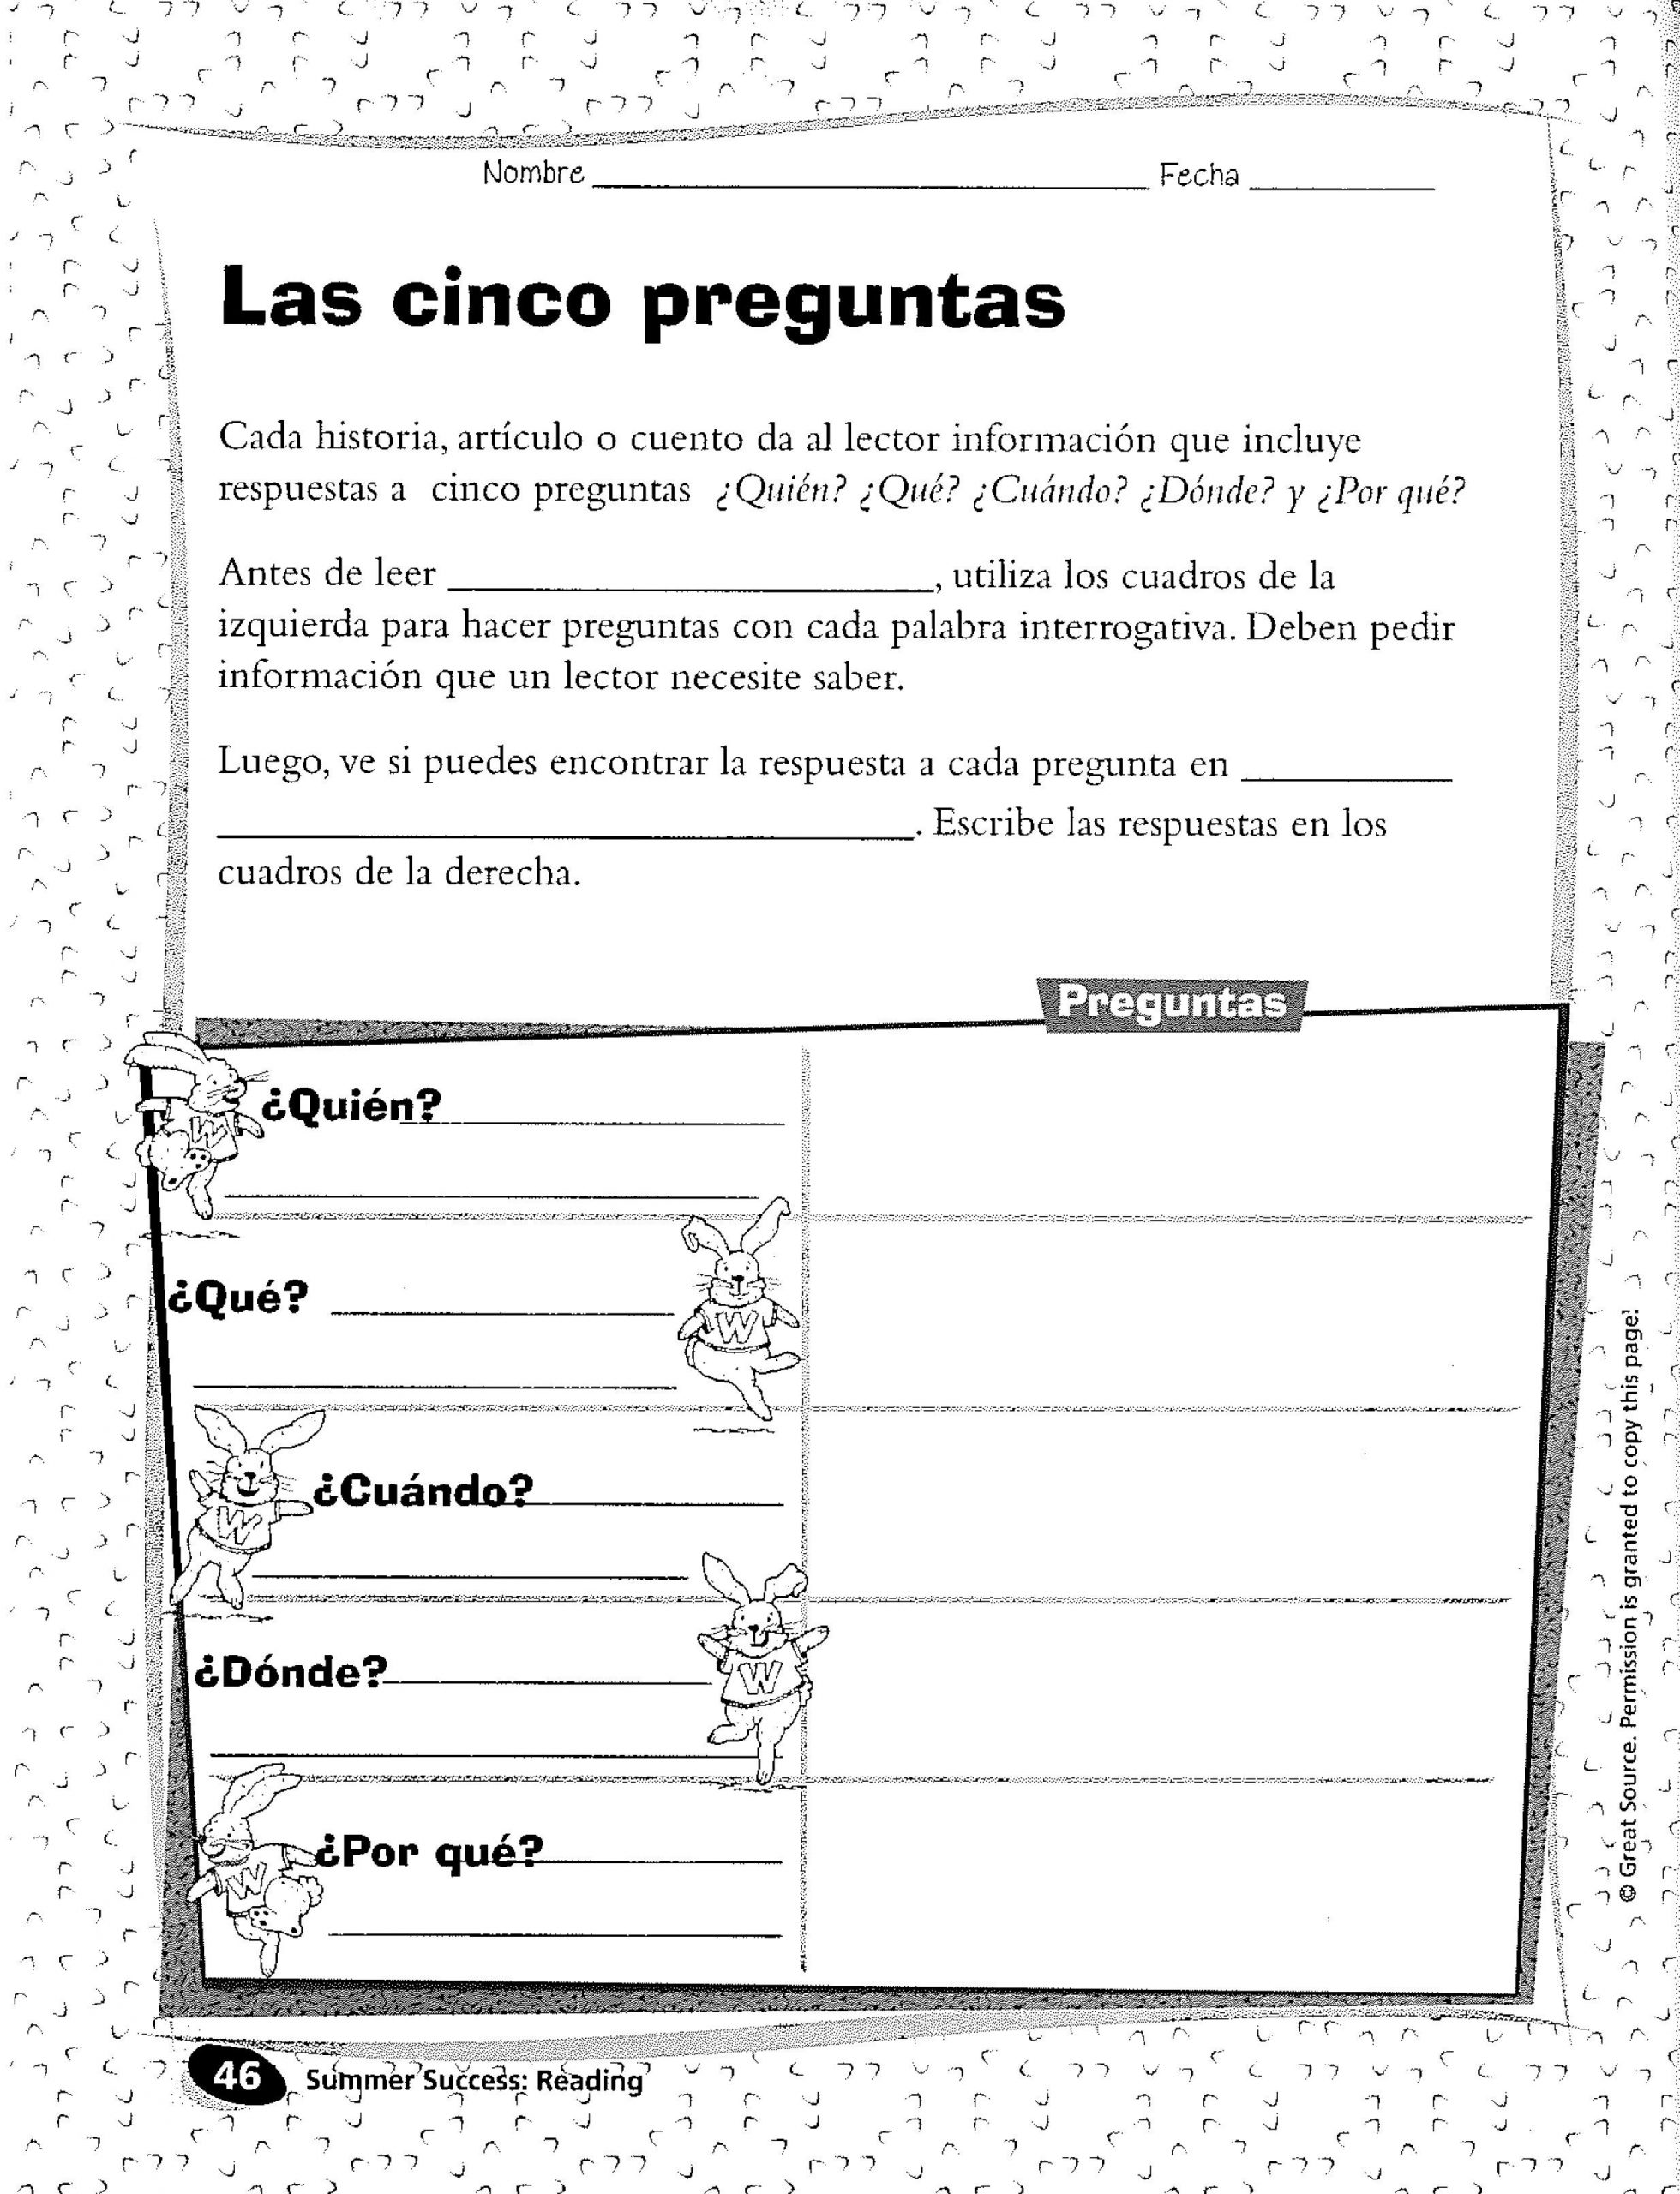 Prediction Worksheets 3rd Grade Spanish Activity Making Predictions Grades 3 6 Download